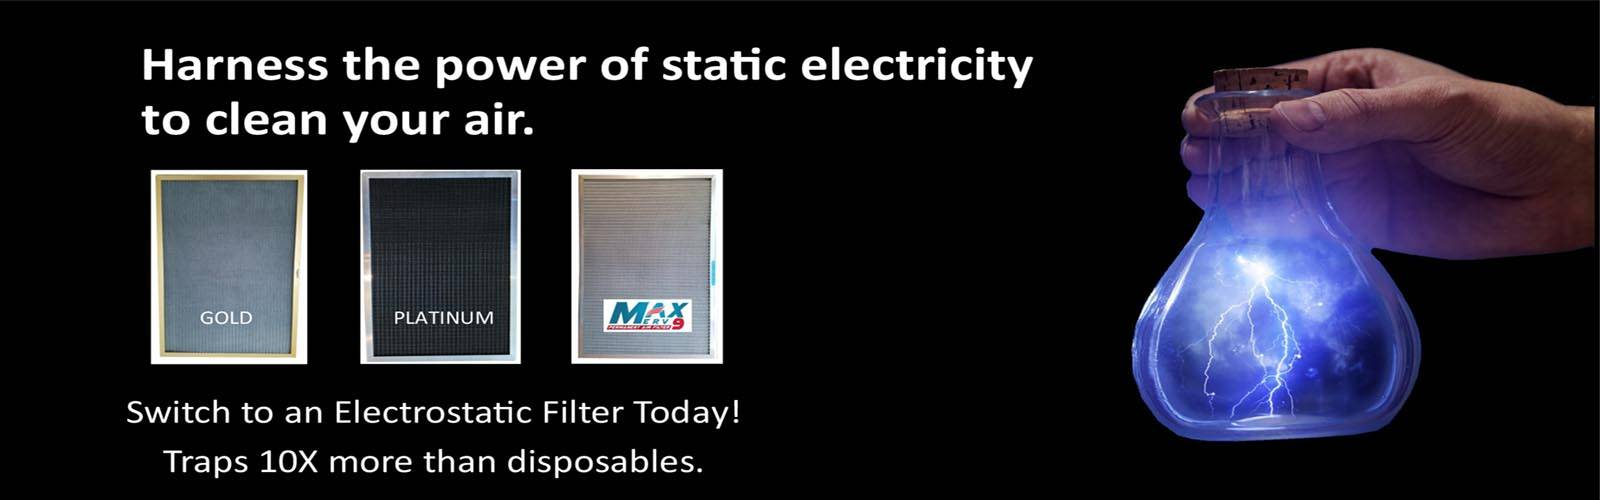 Switch to an Electrostatic Air Filter Today.